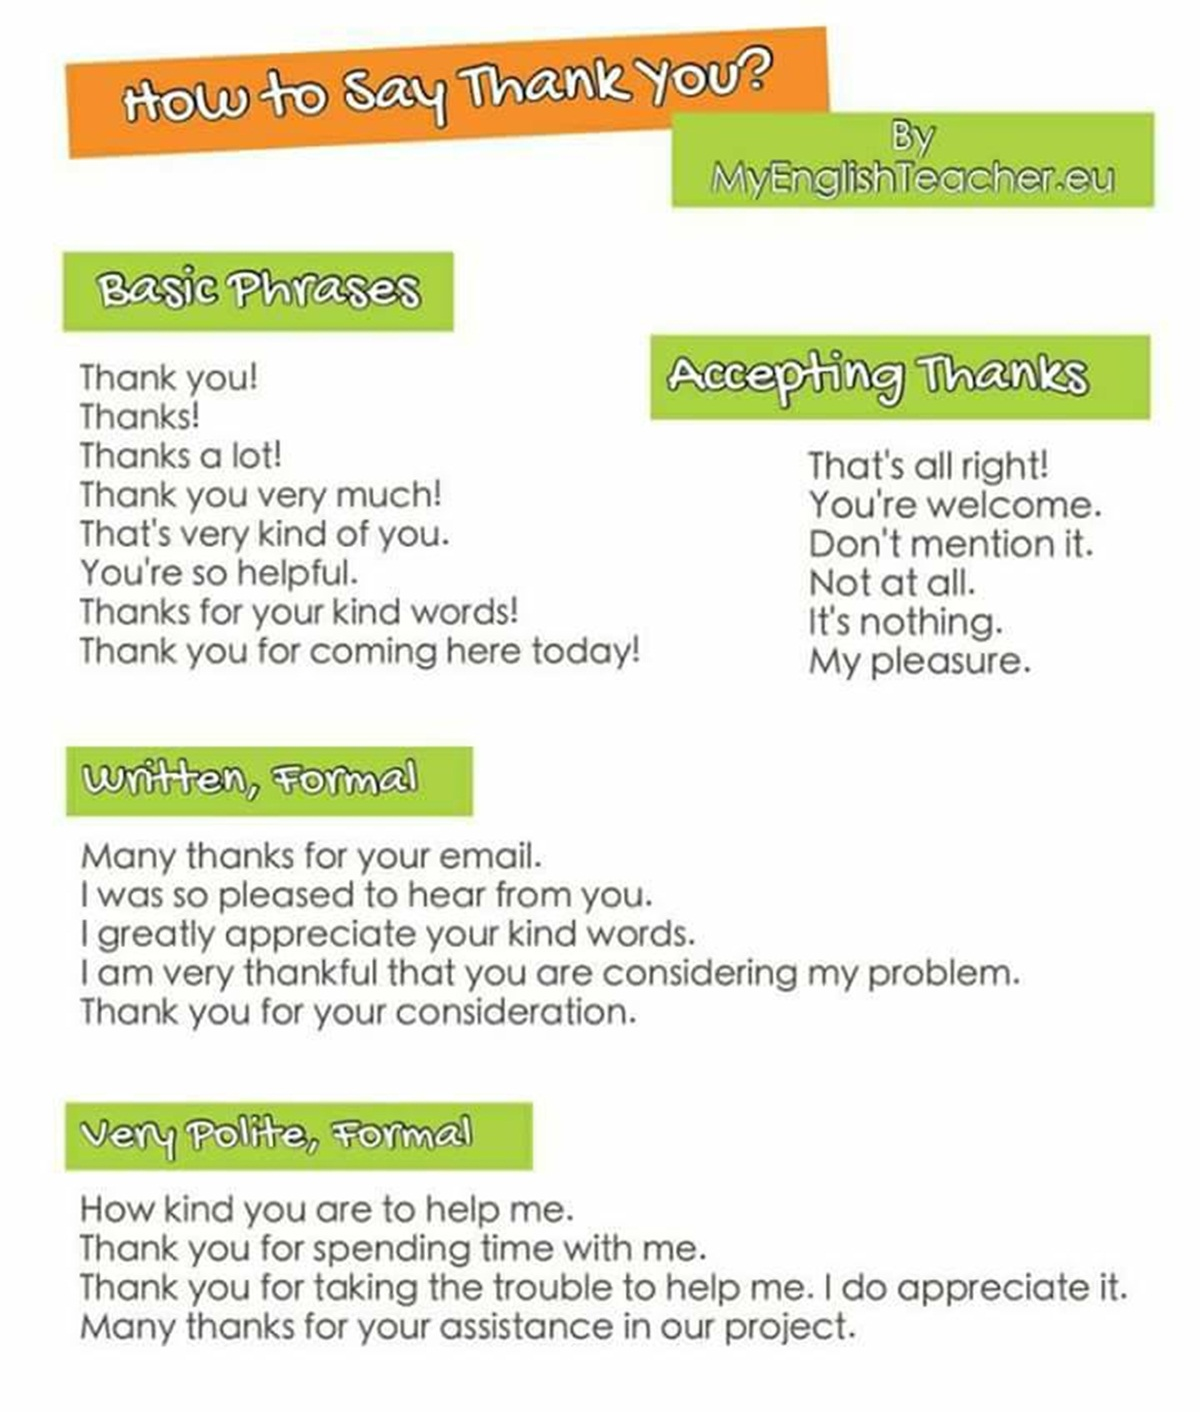 How to Say Thank You & Accept Thanks in English 3